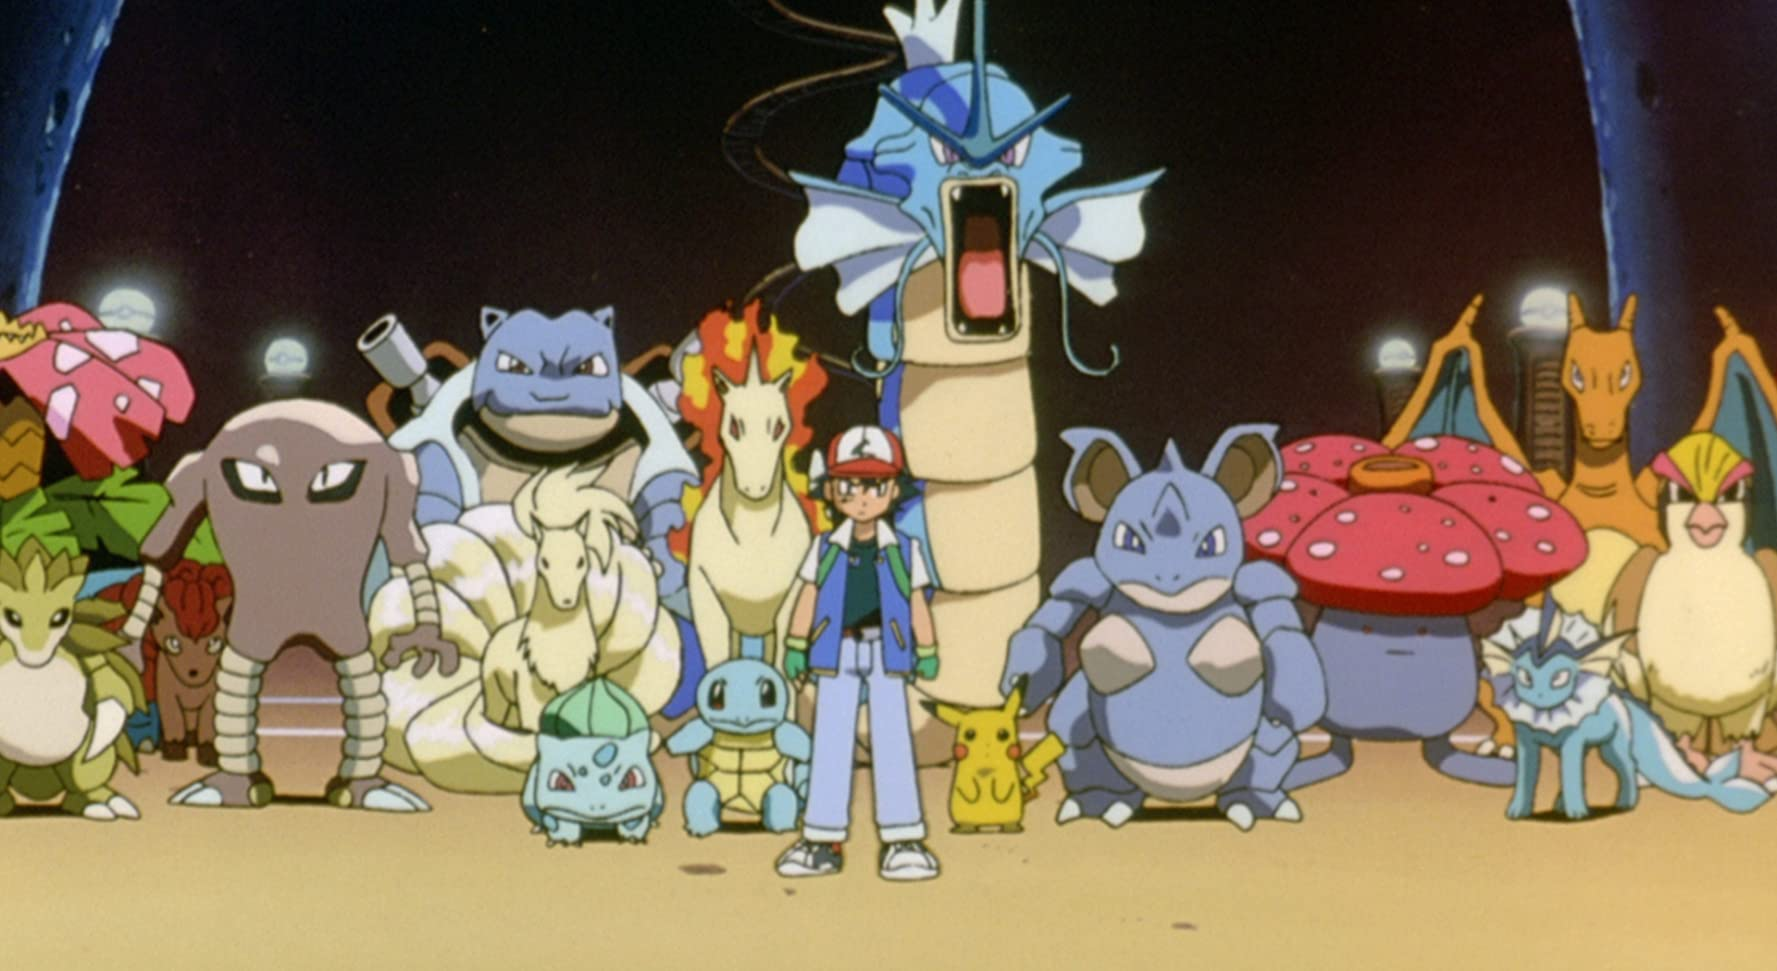 Kết quả hình ảnh cho Pokemon: Mewtwo no Gyakushuu (Pokemon: The First Movie) anime